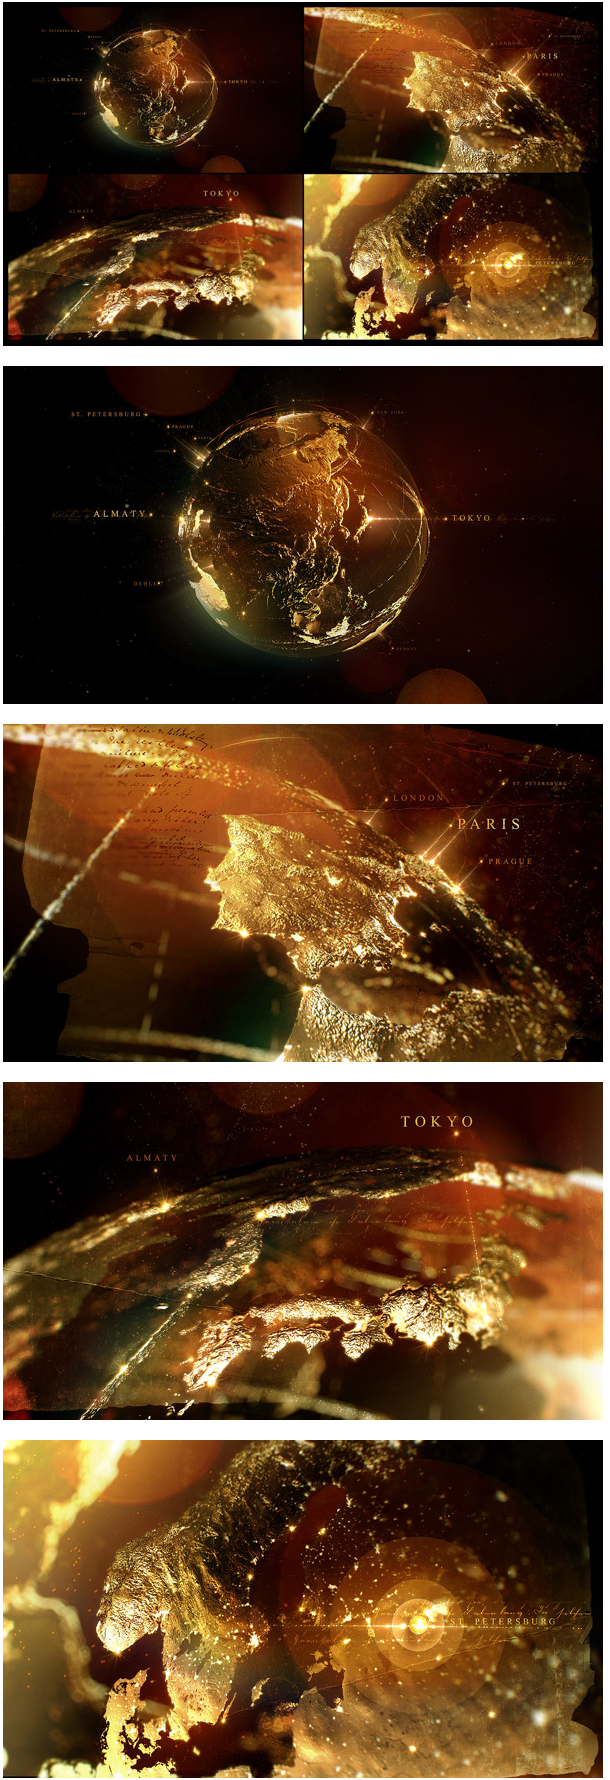 Earth Research v.02 on Behance